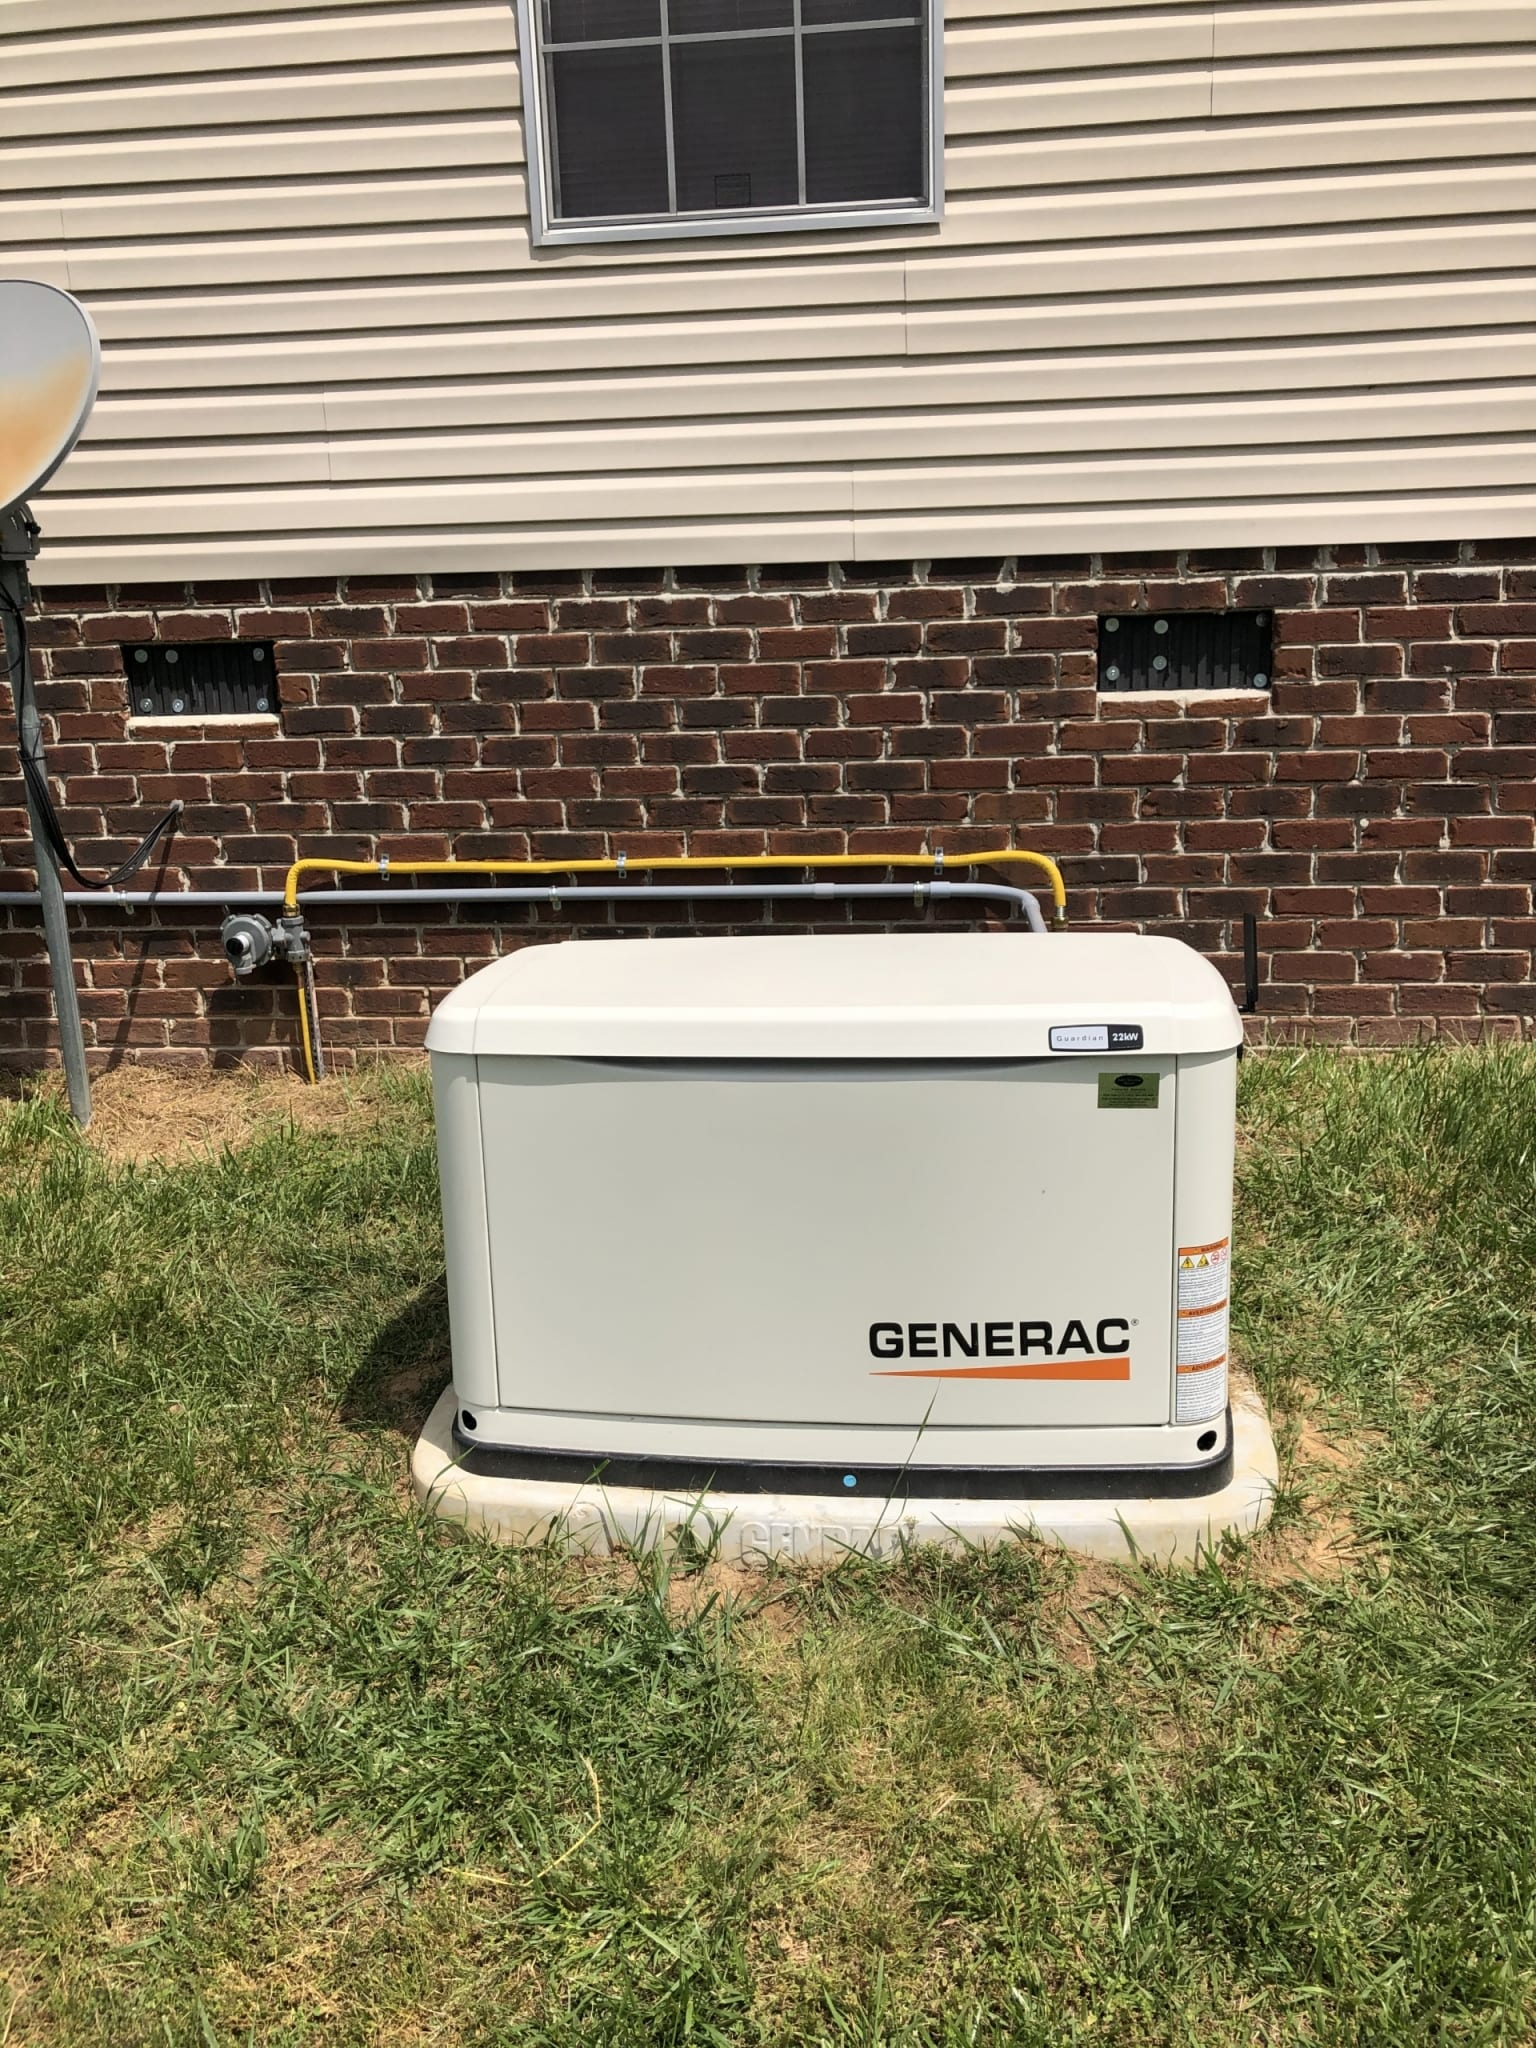 4.21.21 Lawrenceville Generac Automatic Standby